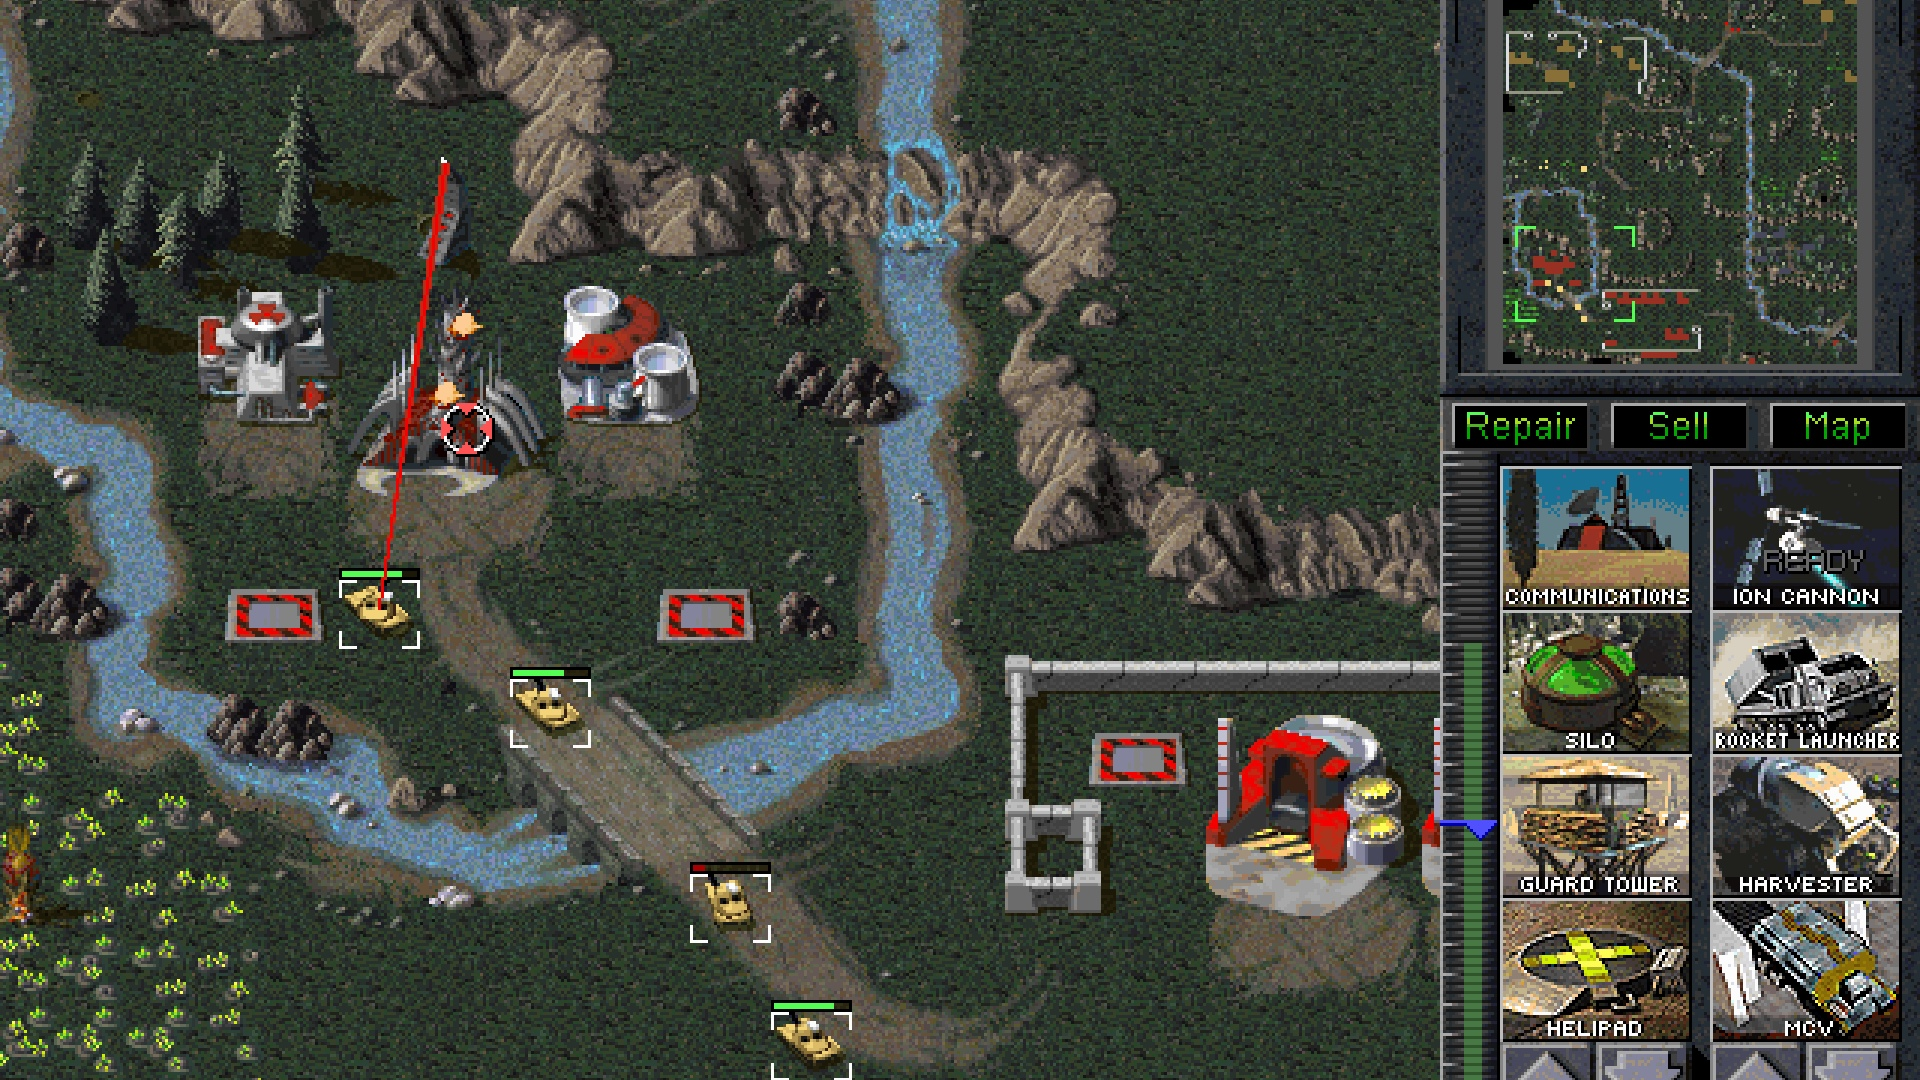 Best Games Ever Free >> Command And Conquer Remaster Announced | Rock Paper Shotgun